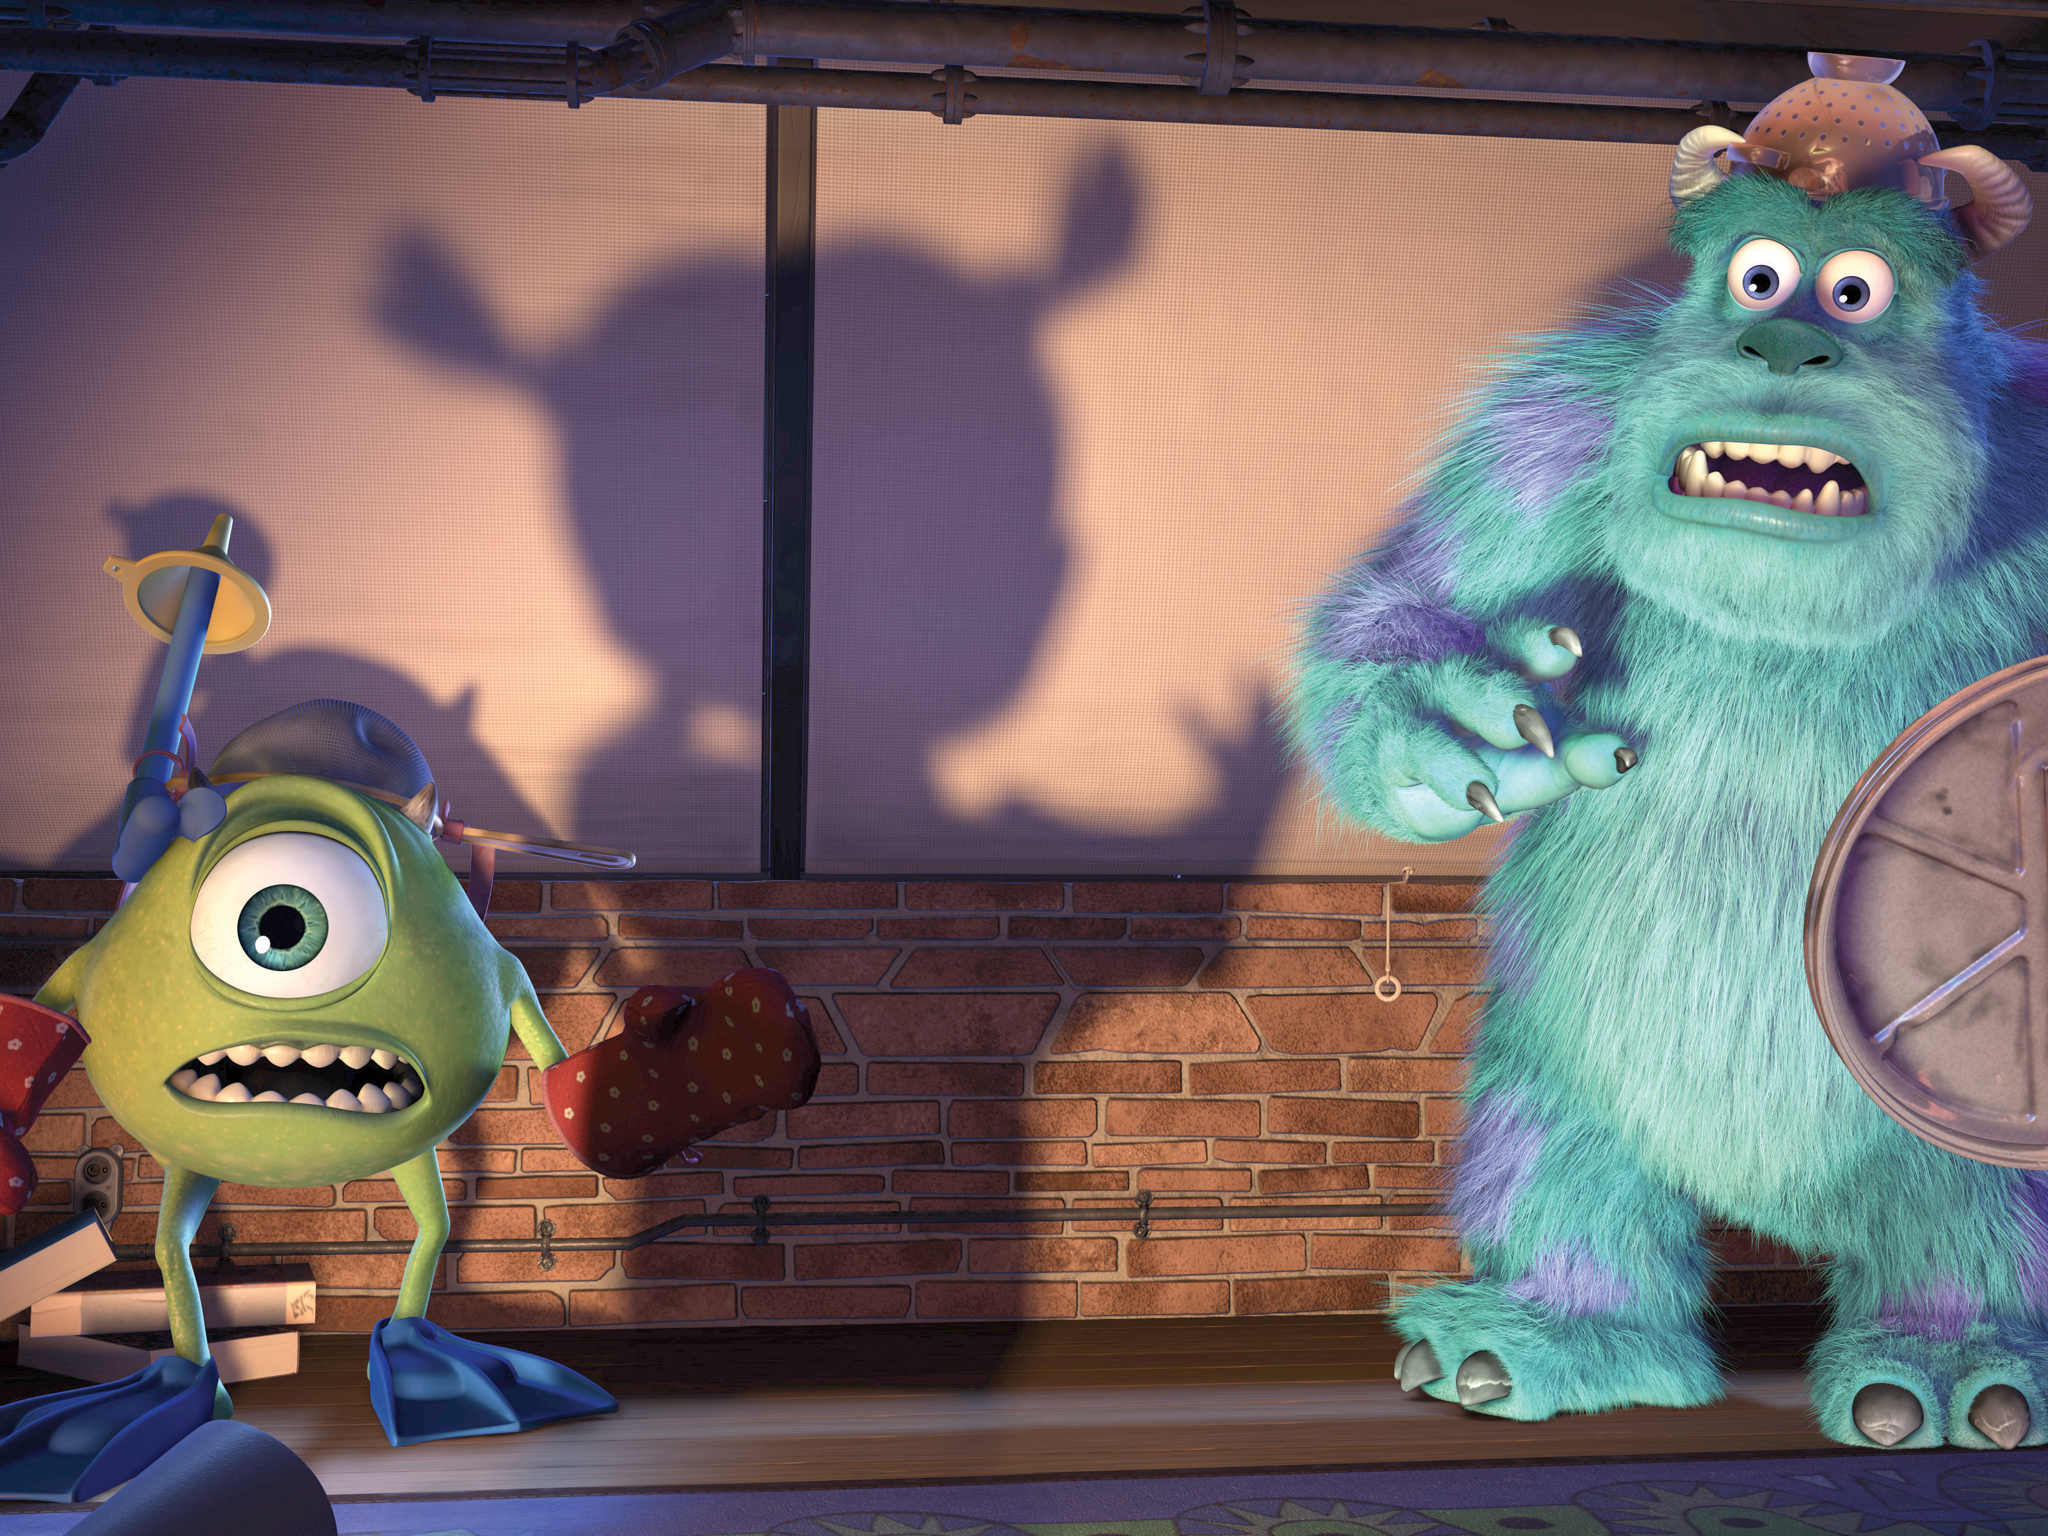 Mike & Sully from 'Monsters, Inc.'